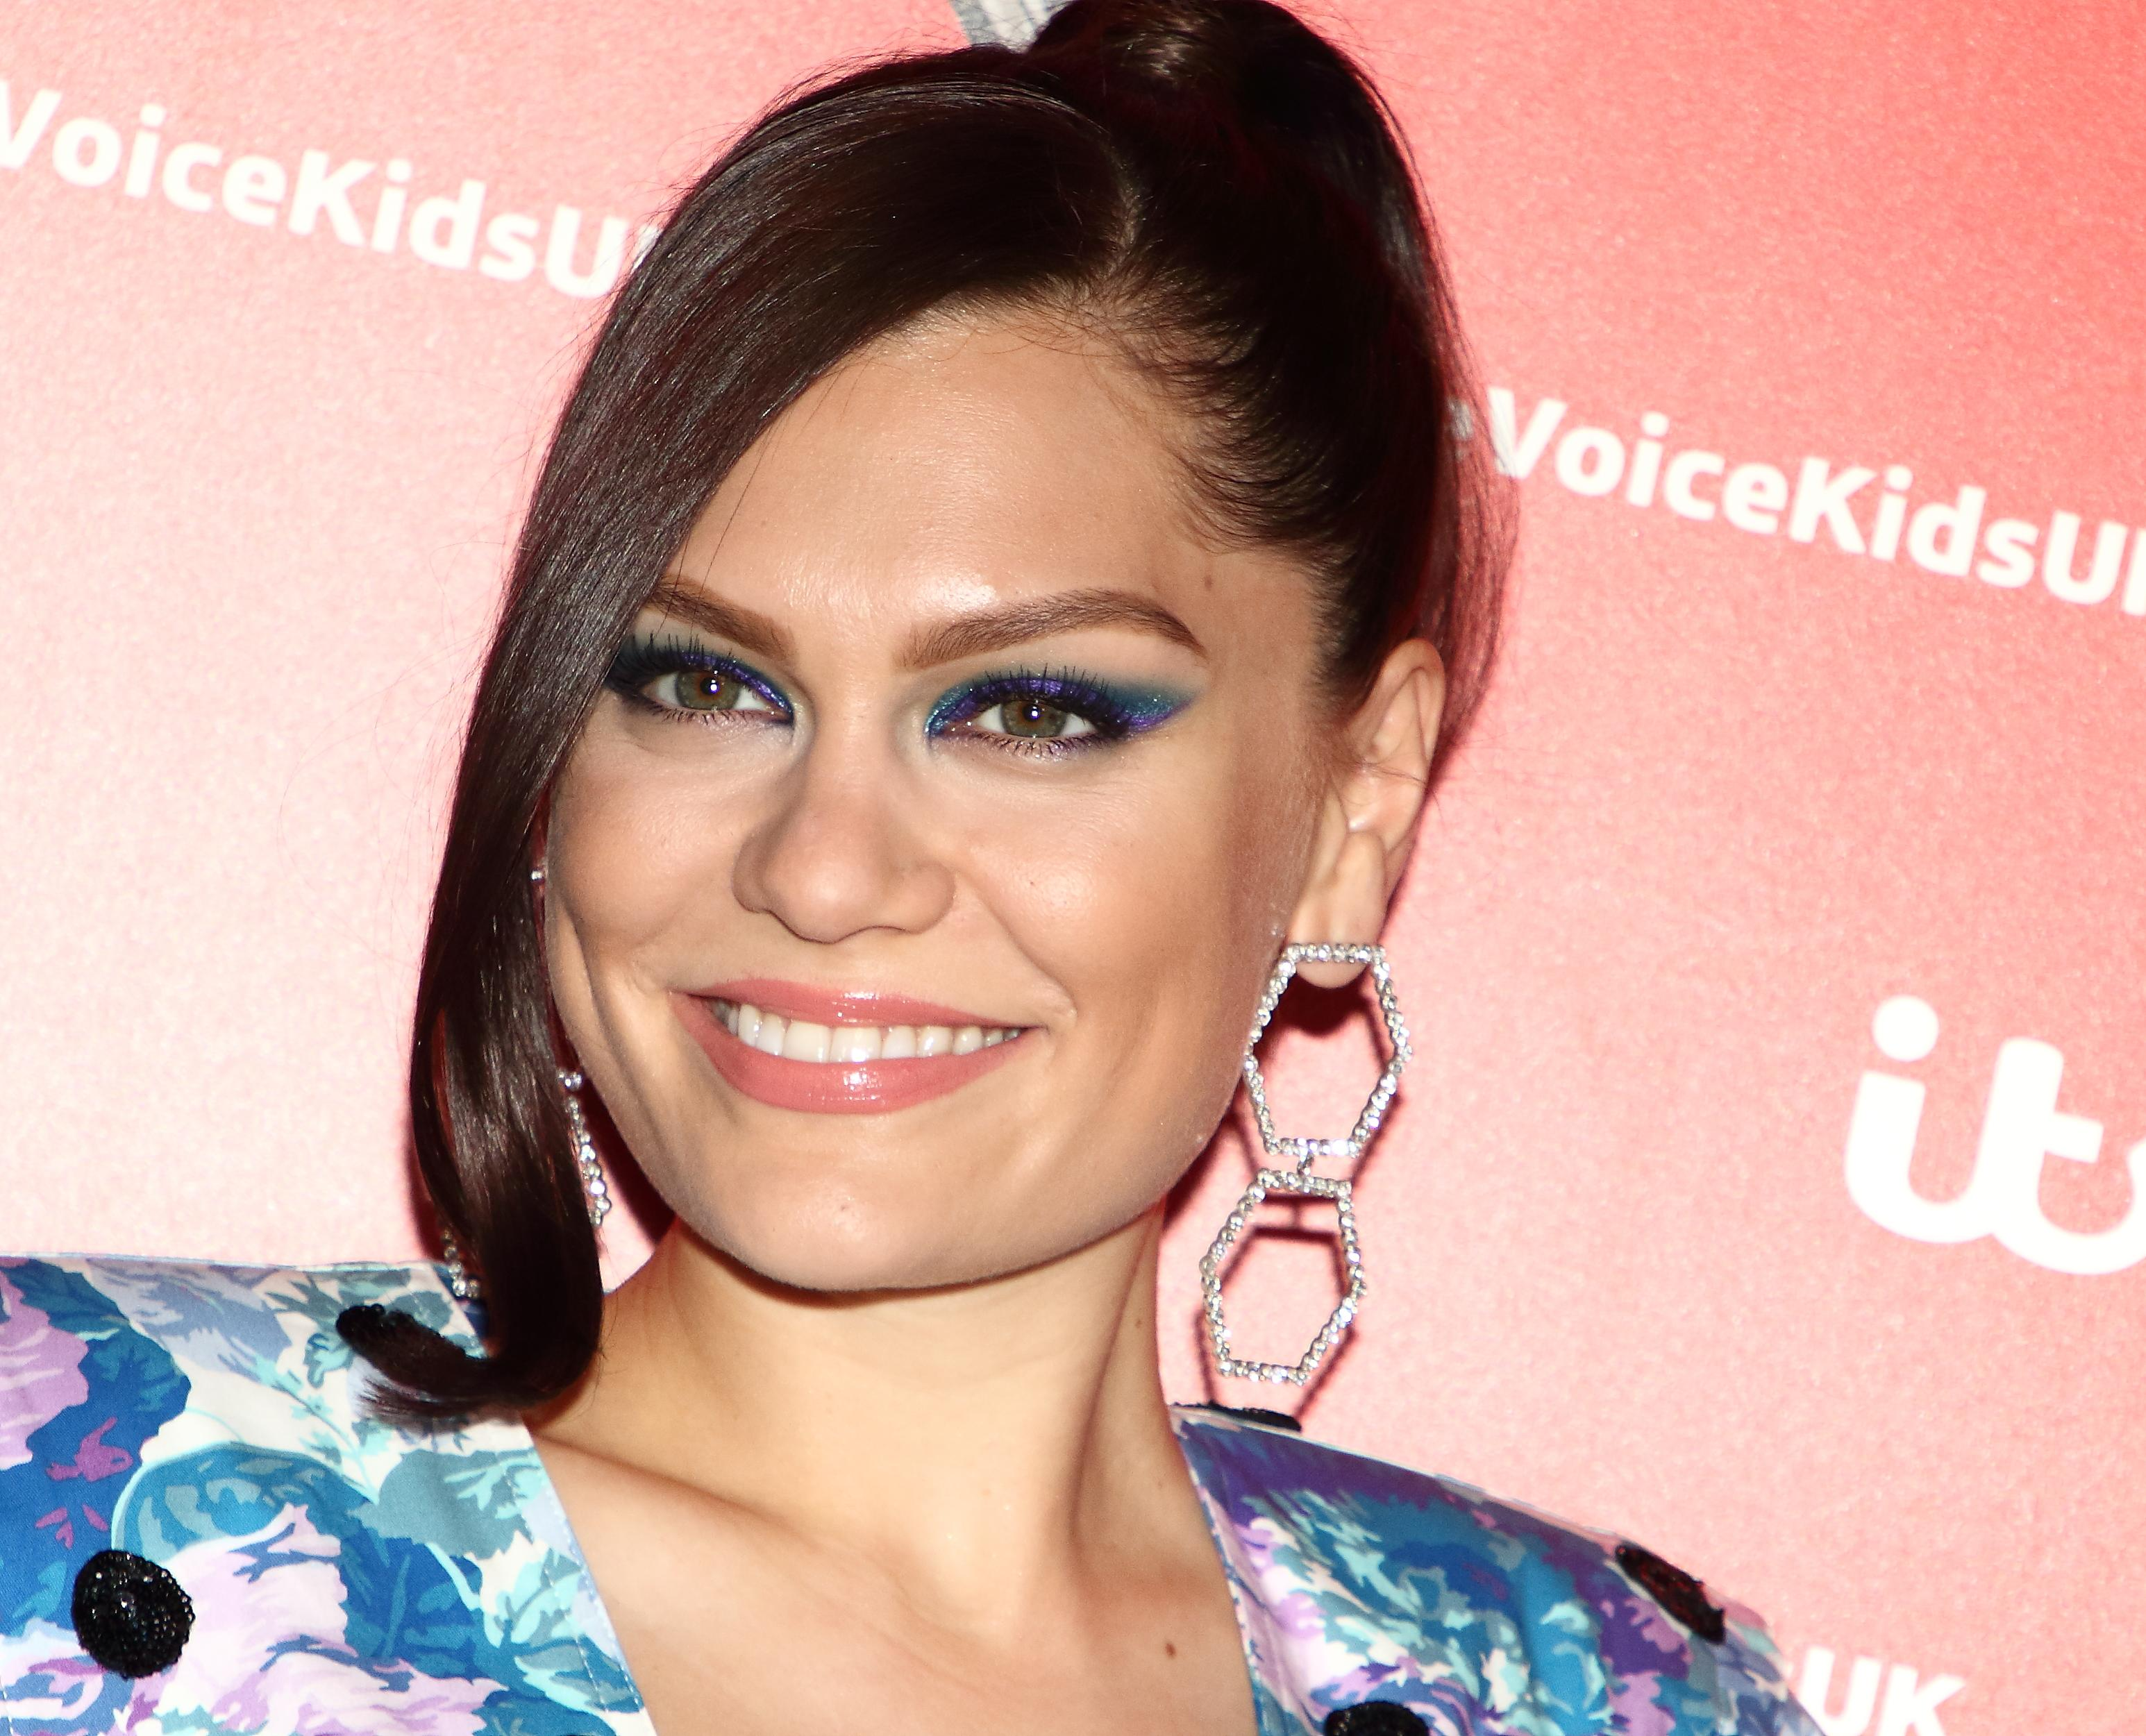 LONDON, UNITED KINGDOM - 2019/06/06: Jessie J seen during the Voice Kids UK 2019 Series 3 launch Photocall at The Royal Society of Arts in London. (Photo by Keith Mayhew/SOPA Images/LightRocket via Getty Images)